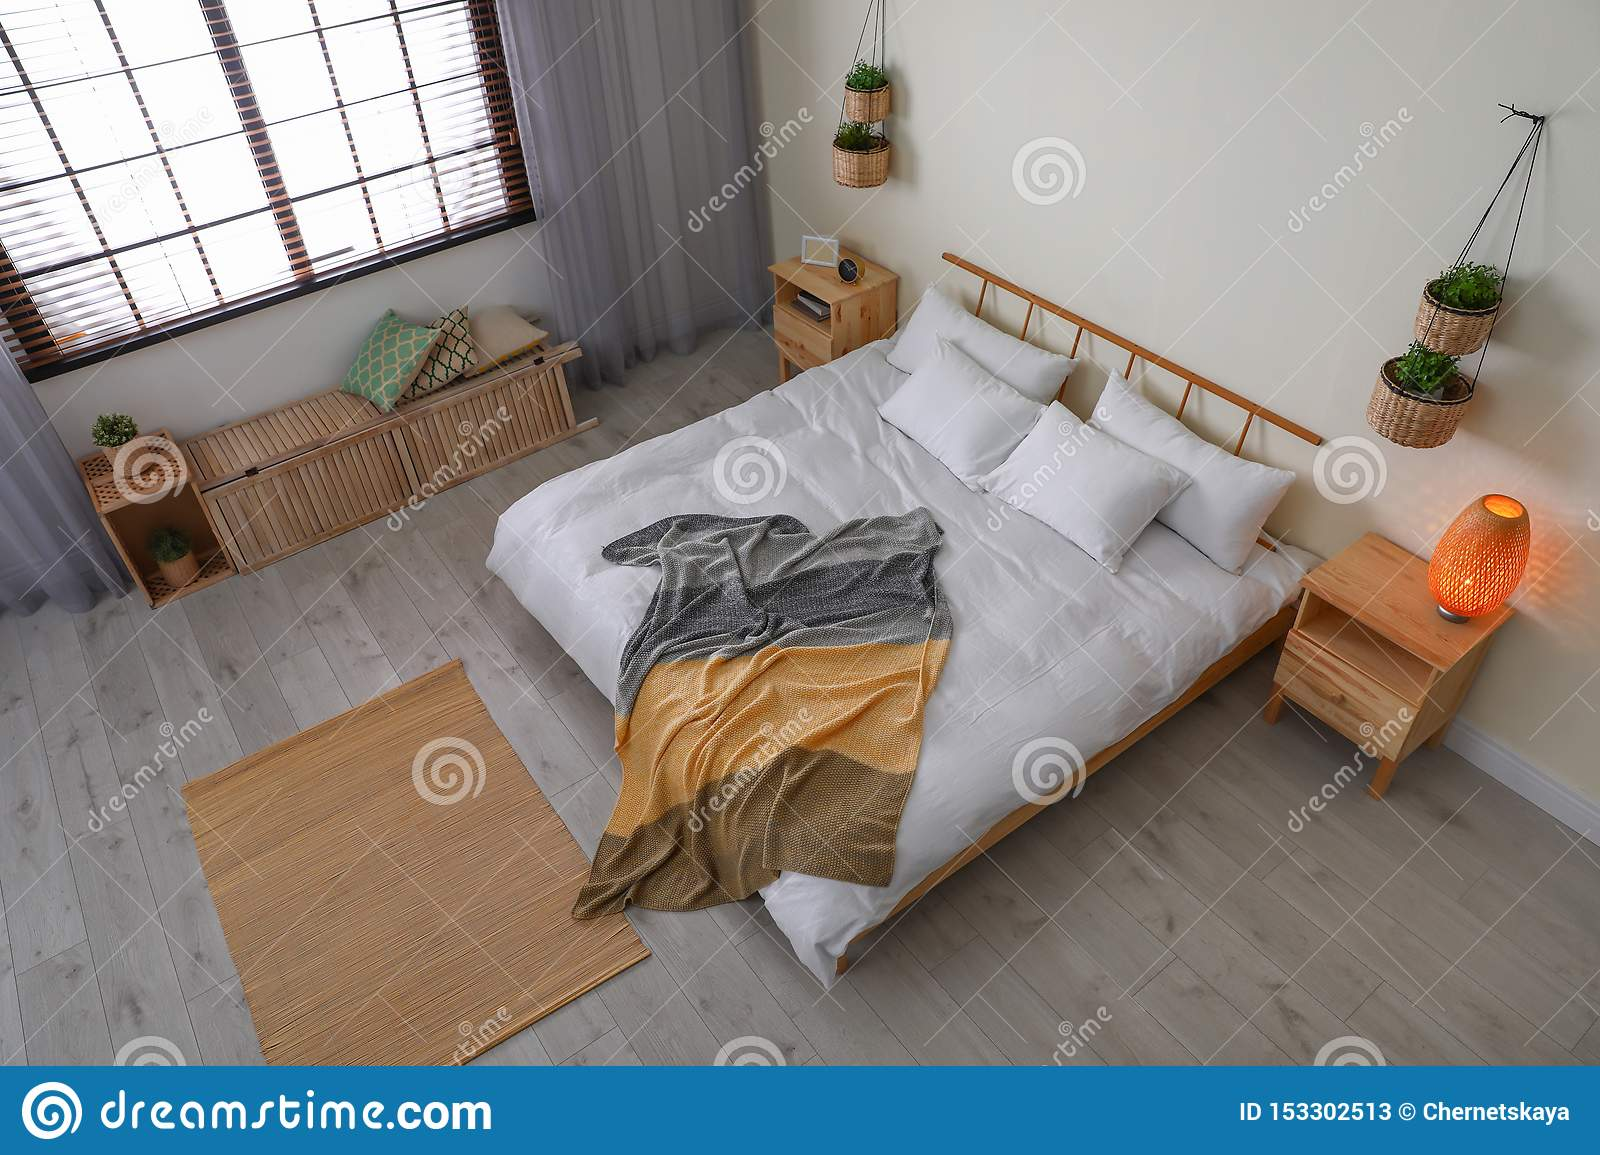 Room Interior With Comfortable Bed View Through Camera Stock Image Image Of Monitoring Bedroom 153302513